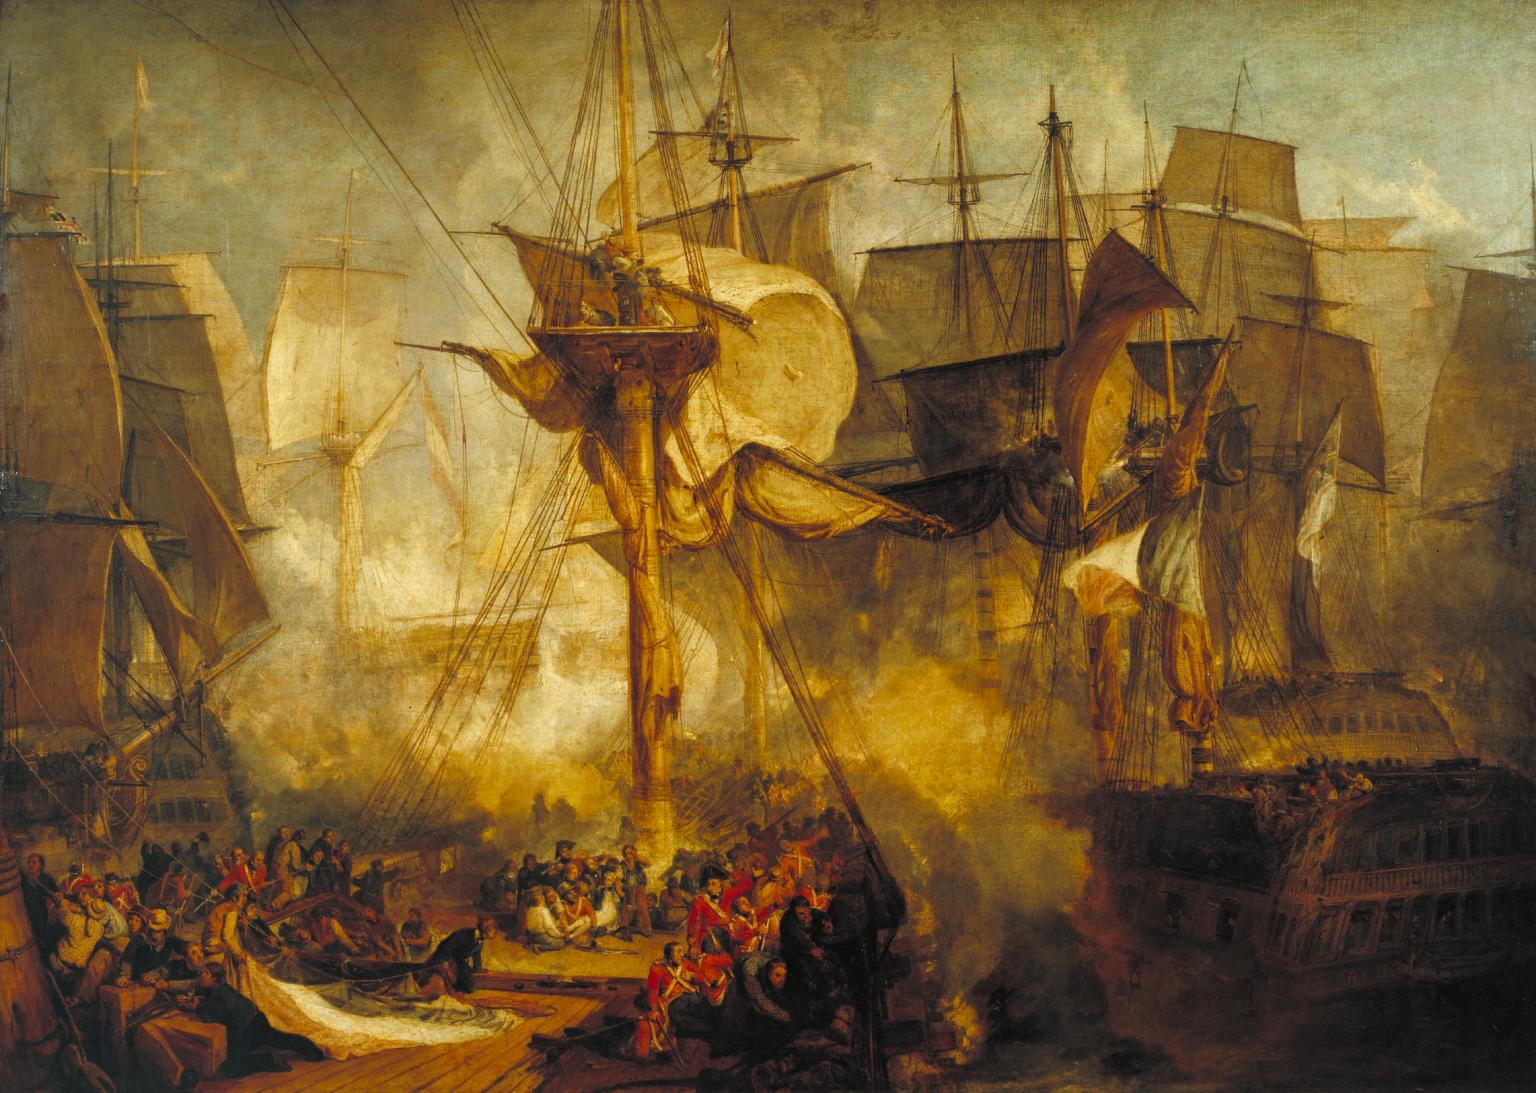 파일:Turner, The Battle of Trafalgar (1806).jpg